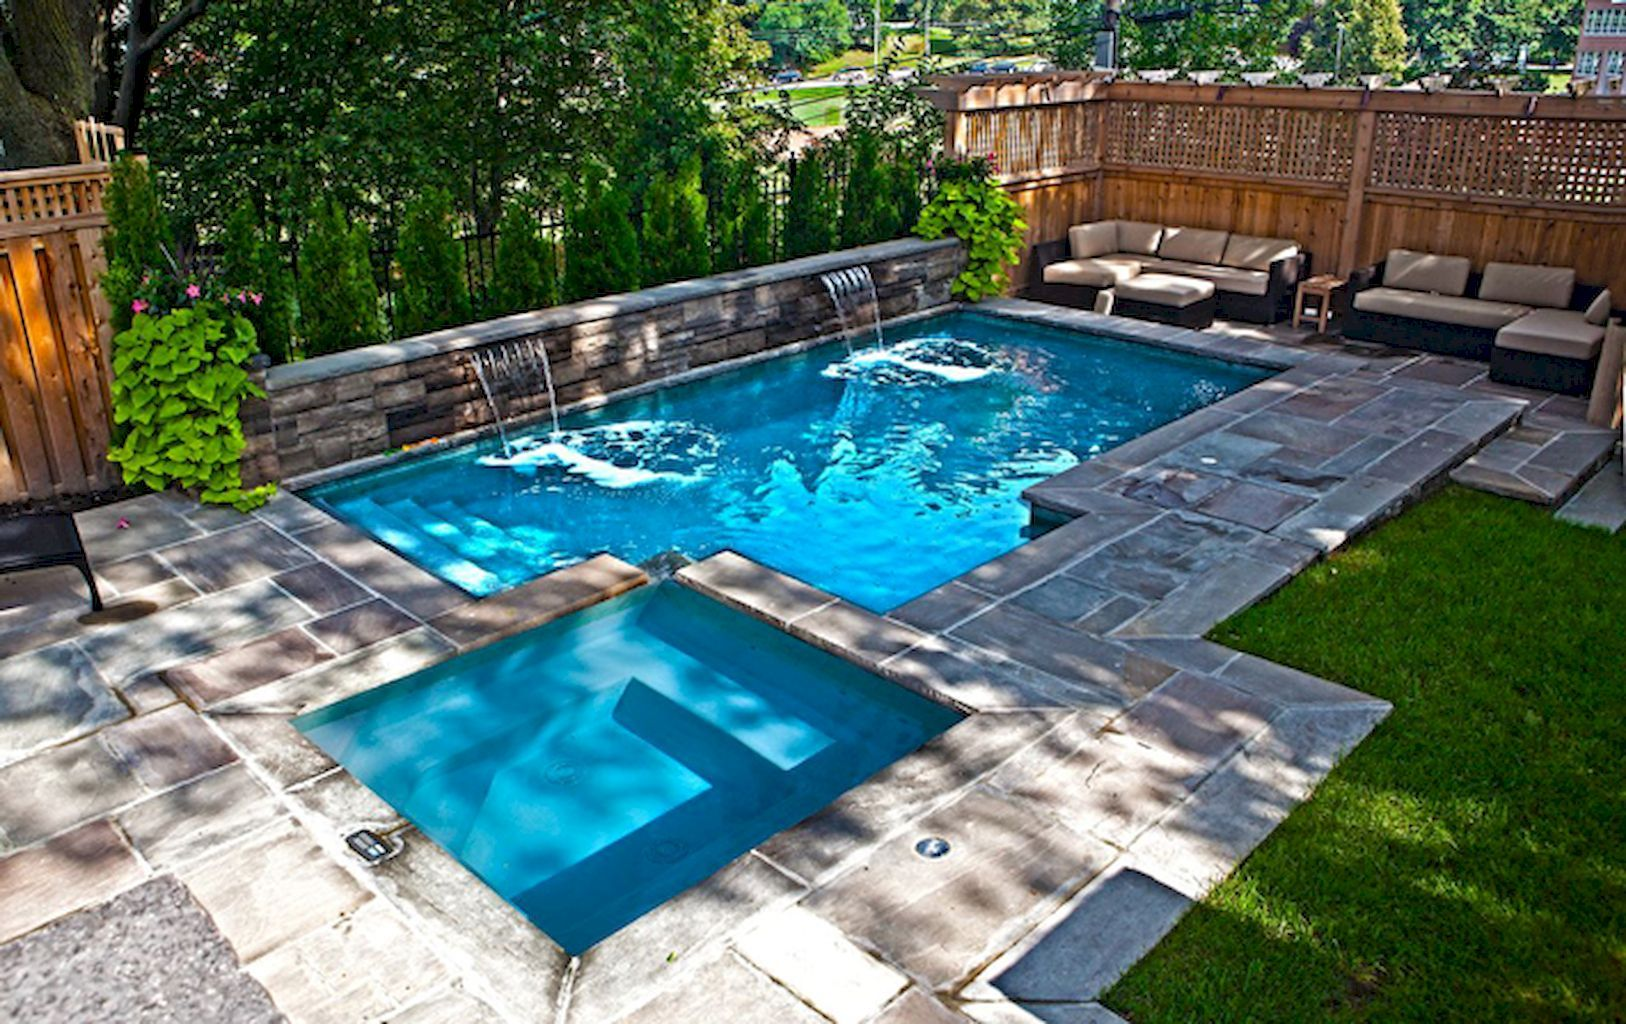 Adorable 88 Swimming Pool Ideas For A Small Backyard https://besideroom.com